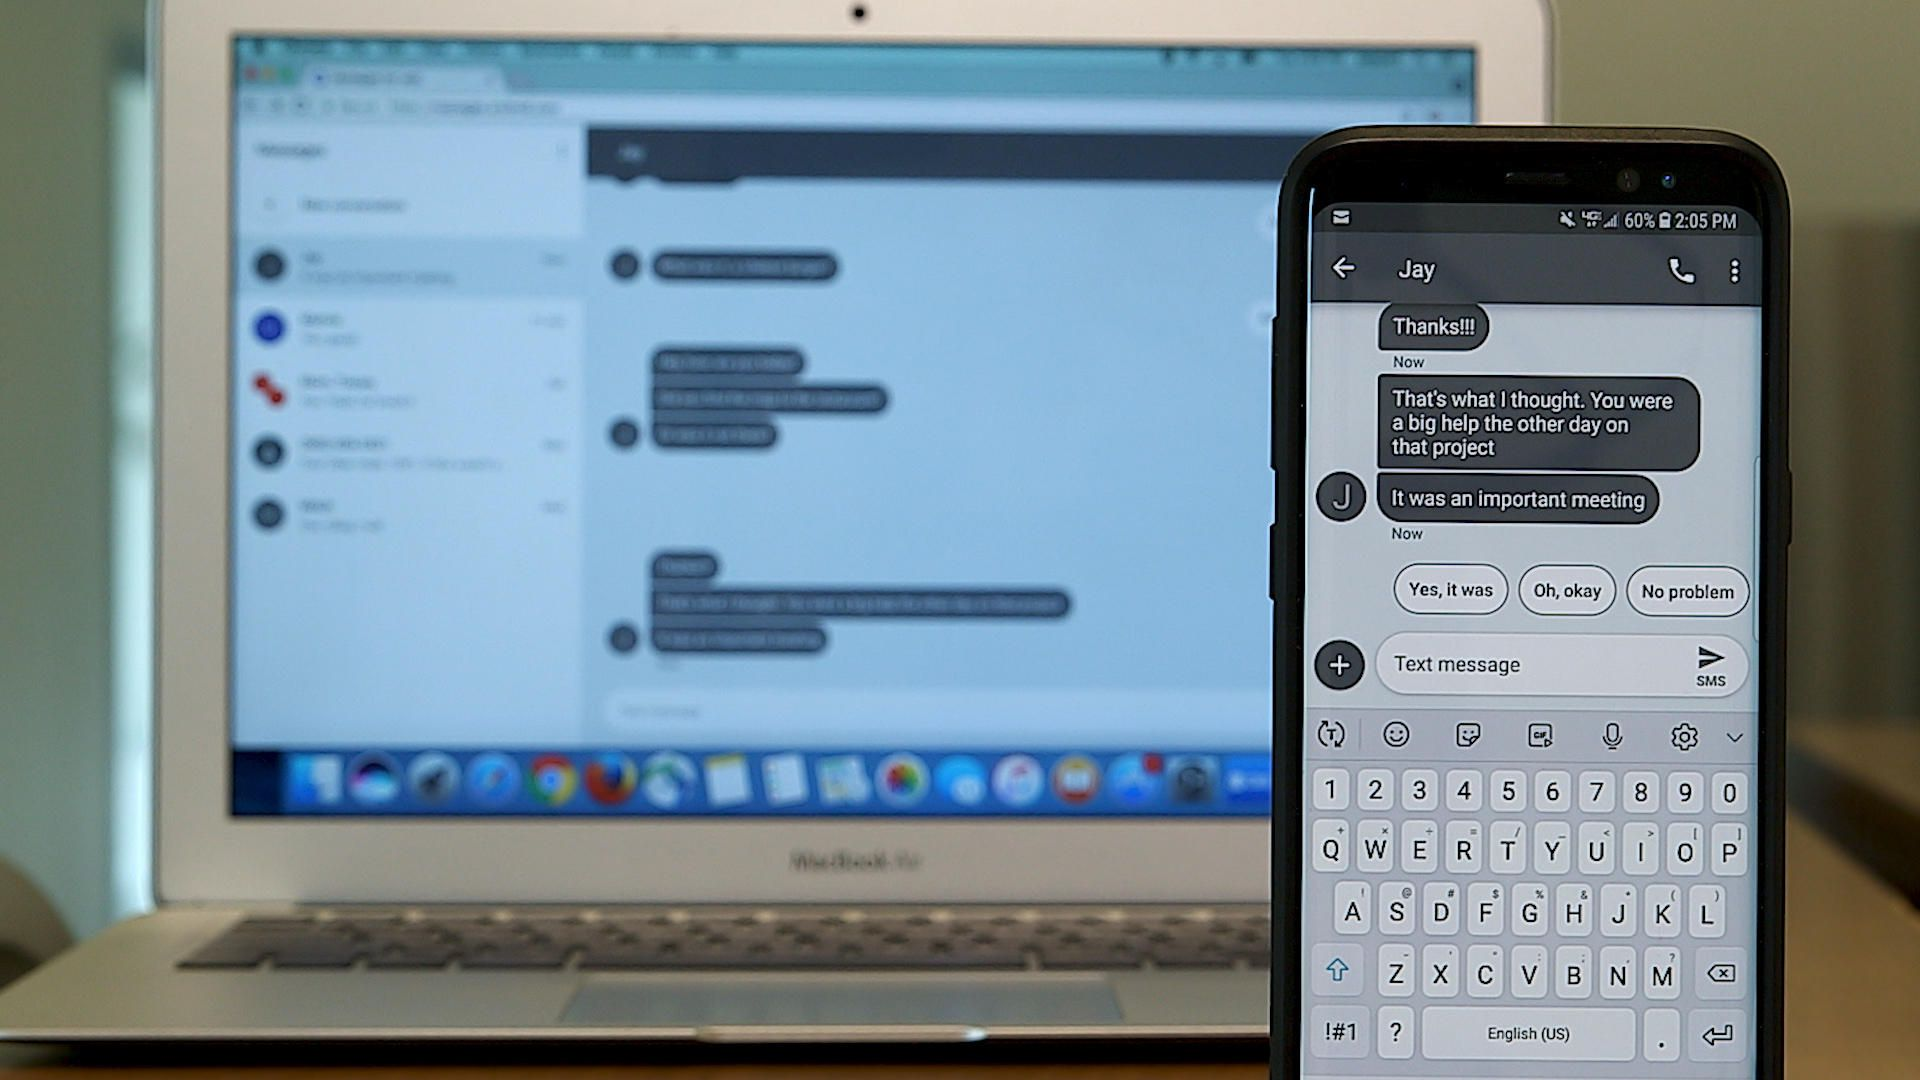 android-messages-2